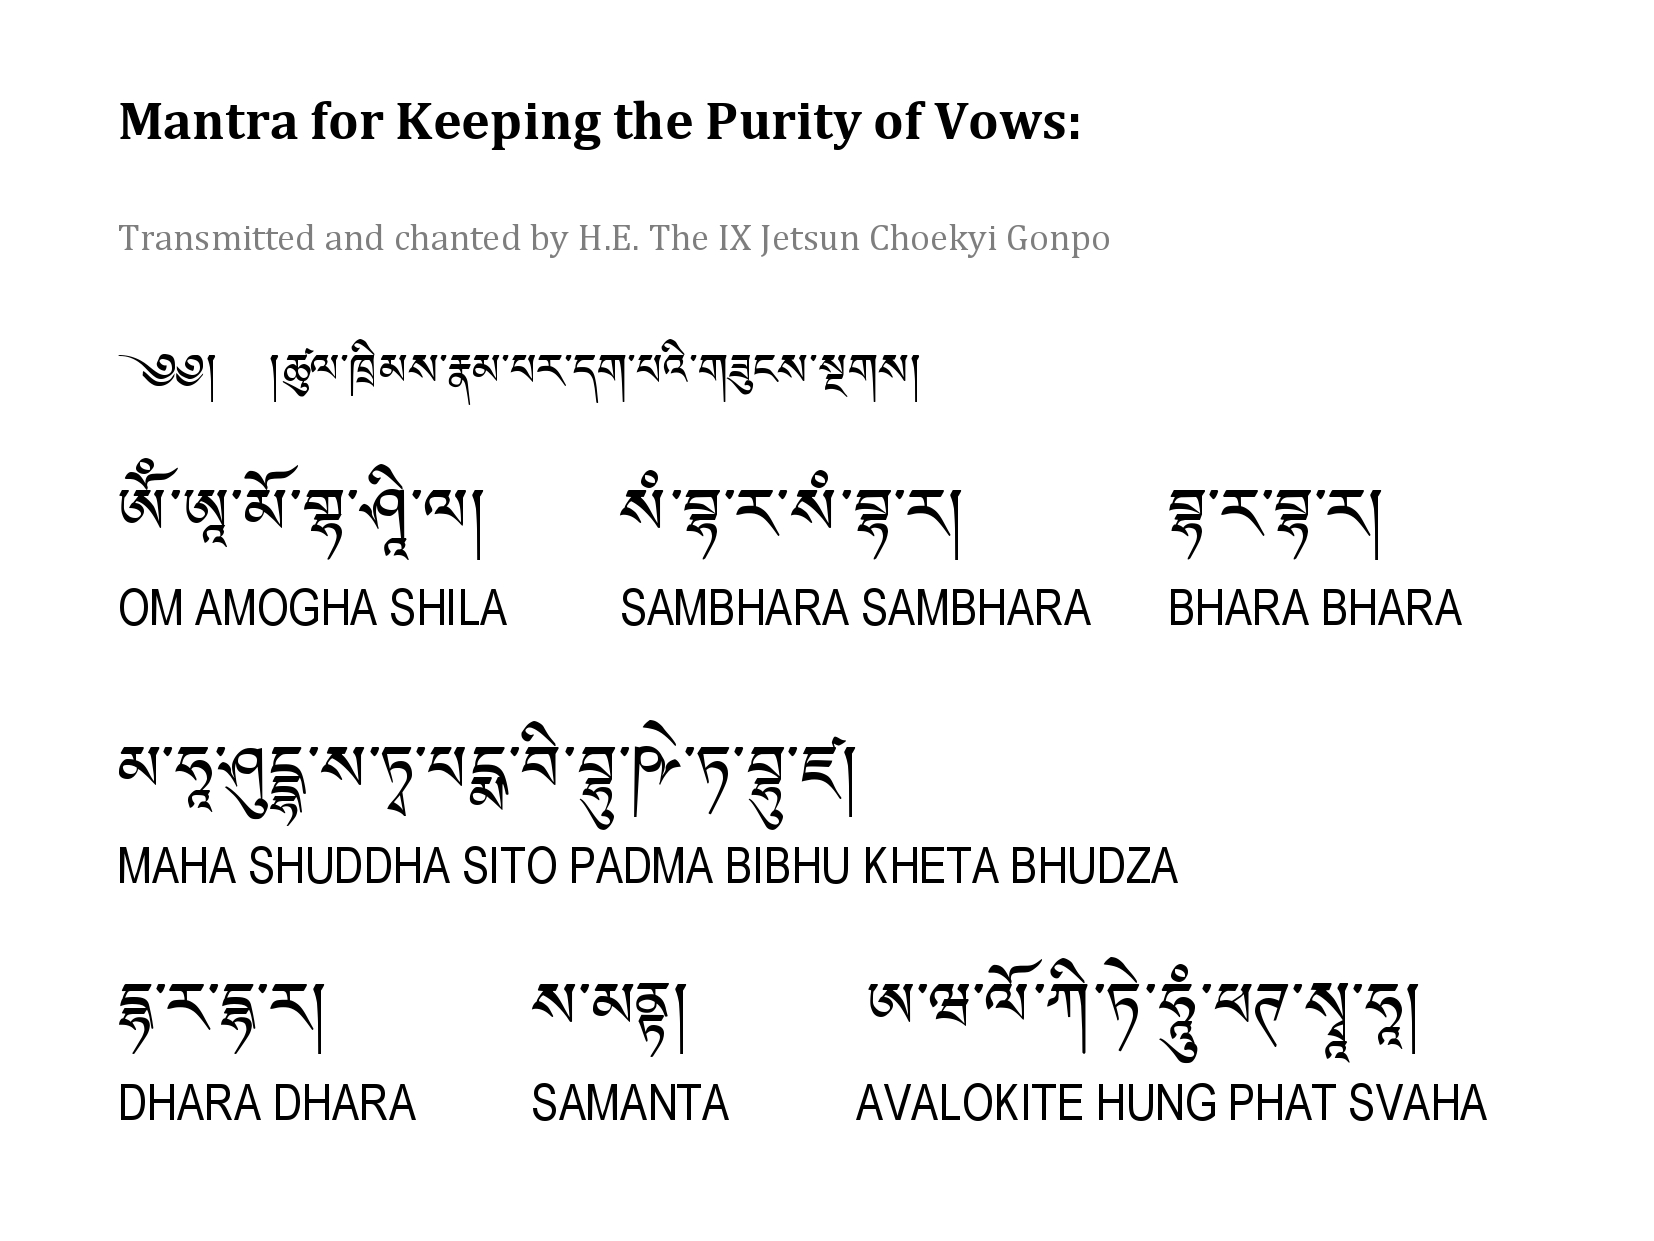 Mantra for Keeping The Purity of Vows by Choekyi Gonpo IX